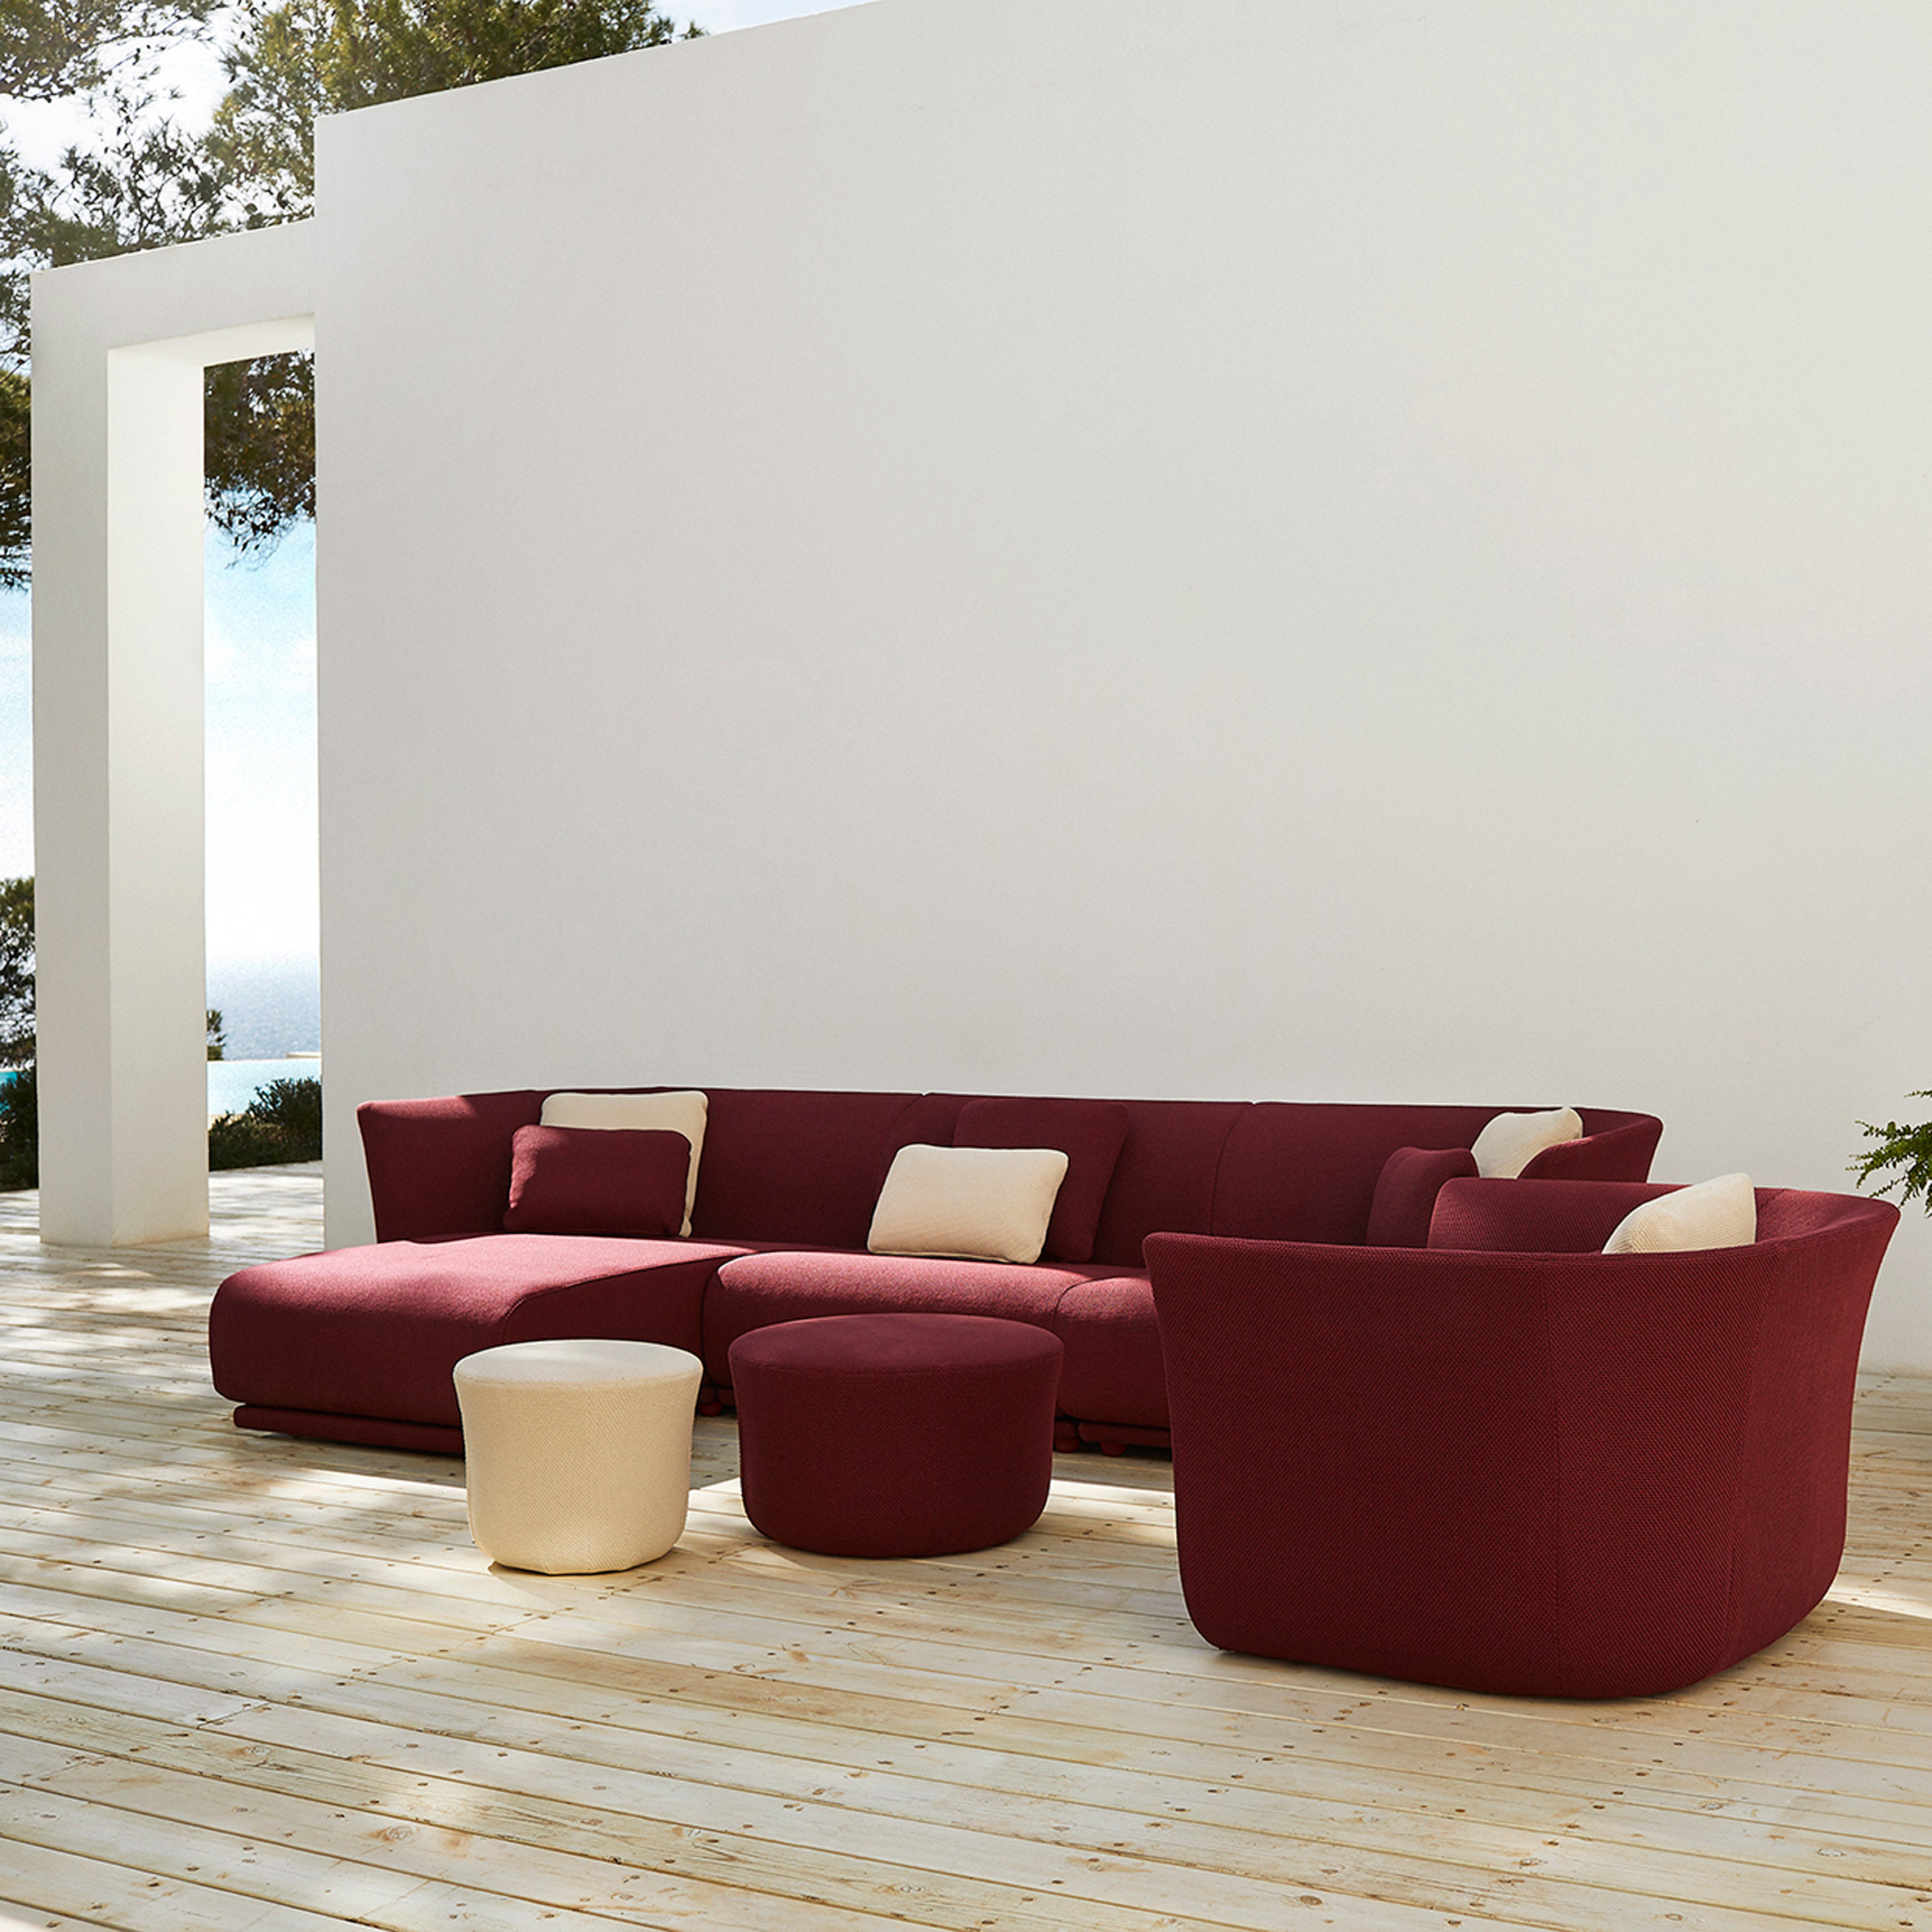 Suave outdoor furniture by Marcel Wanders for Vondom